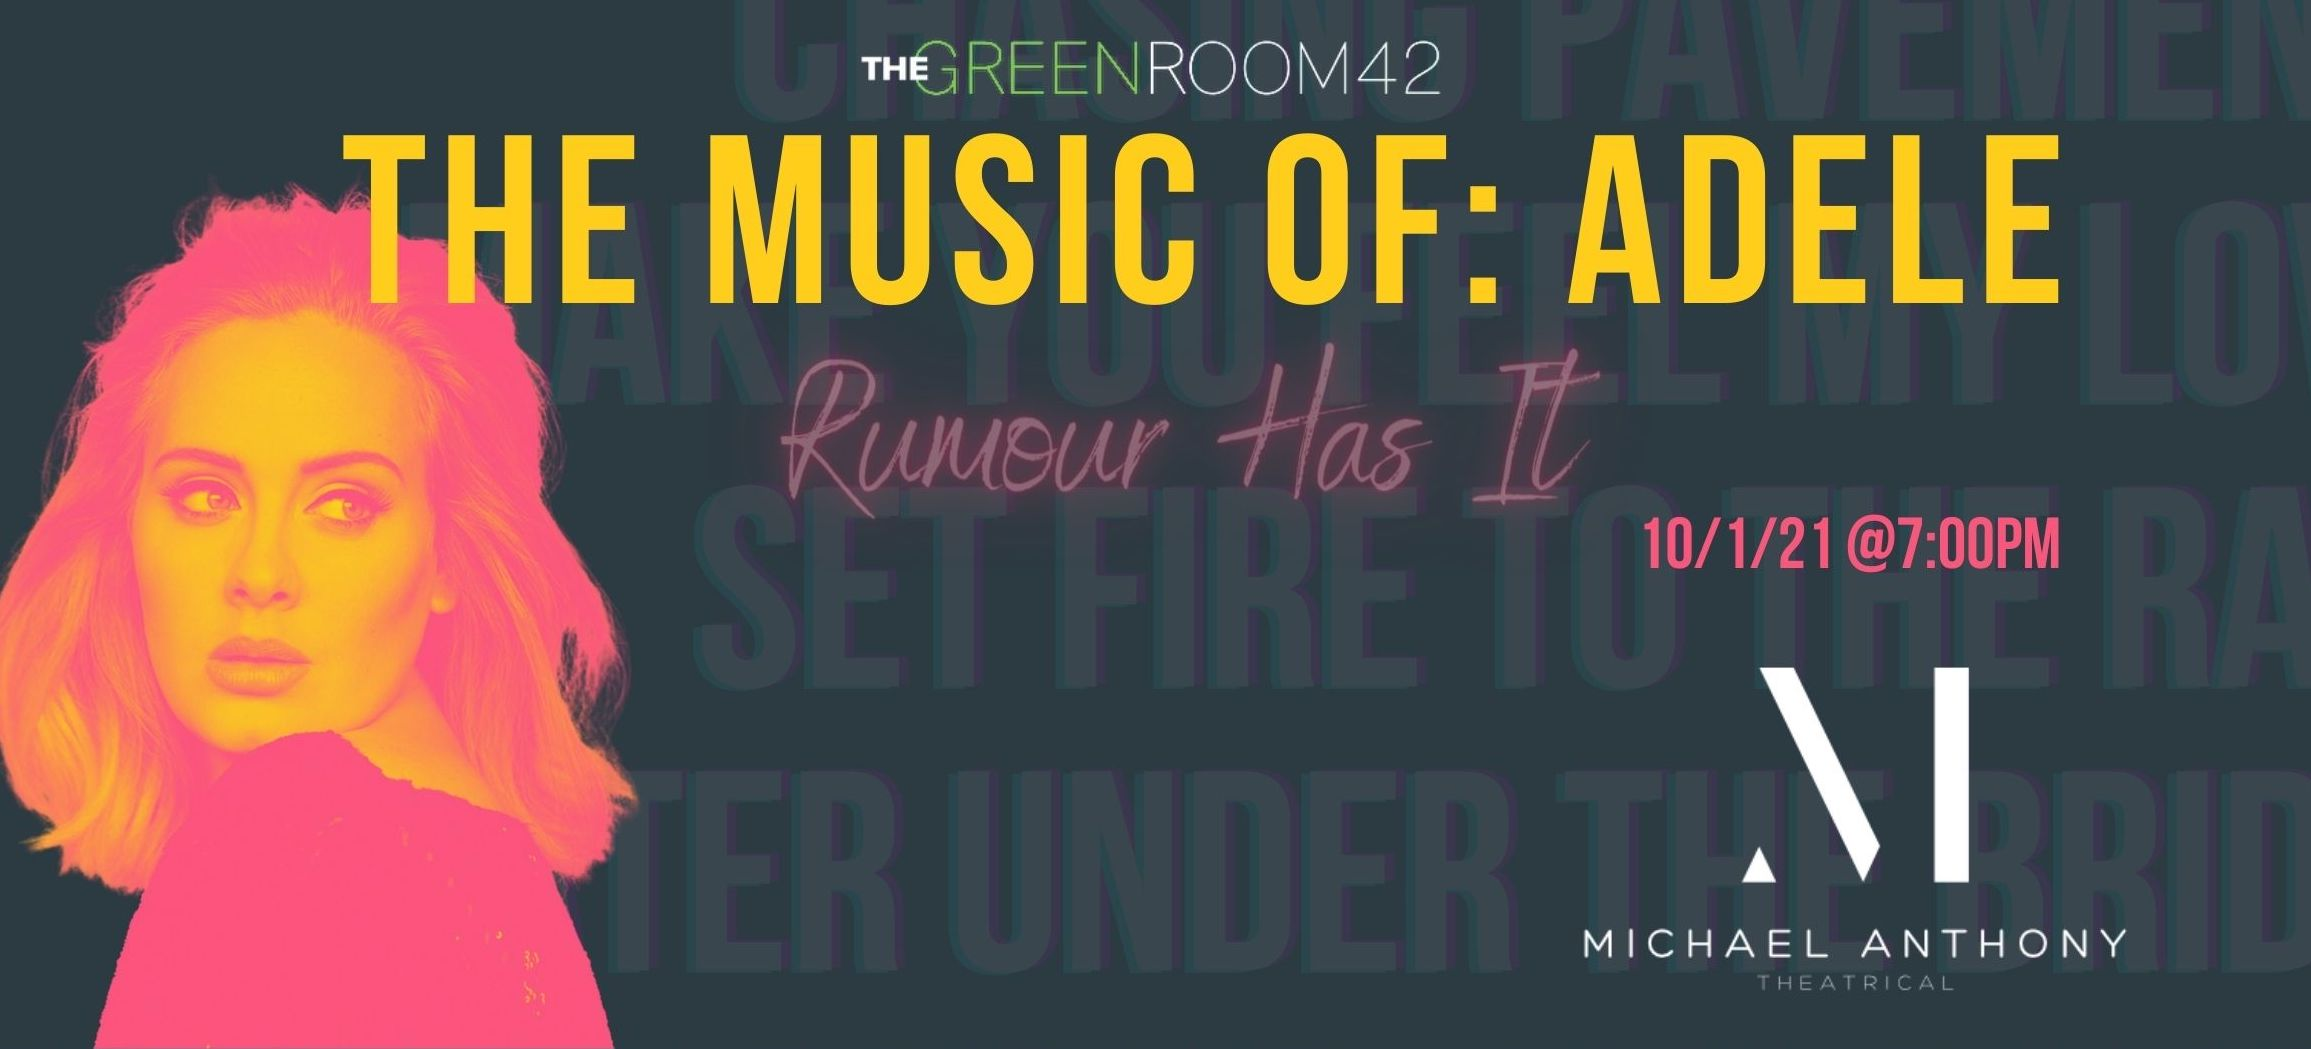 THE MUSIC OF: ADELE to be Presented at The Green Room 42